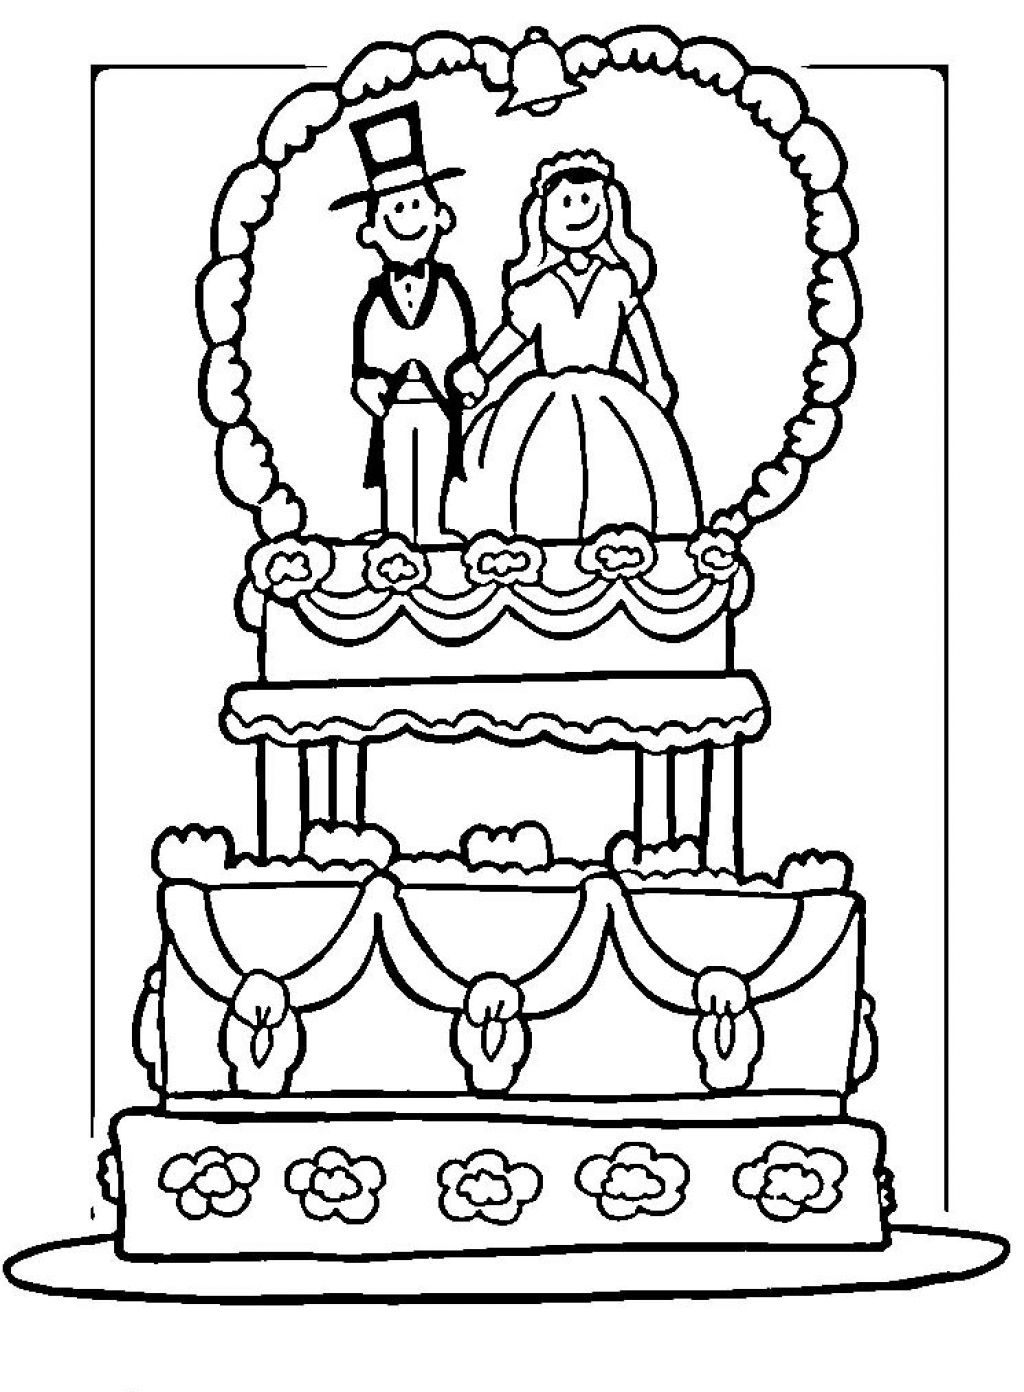 coloring wedding activities for kids 43 best kids activities images on pinterest kids activities wedding coloring for